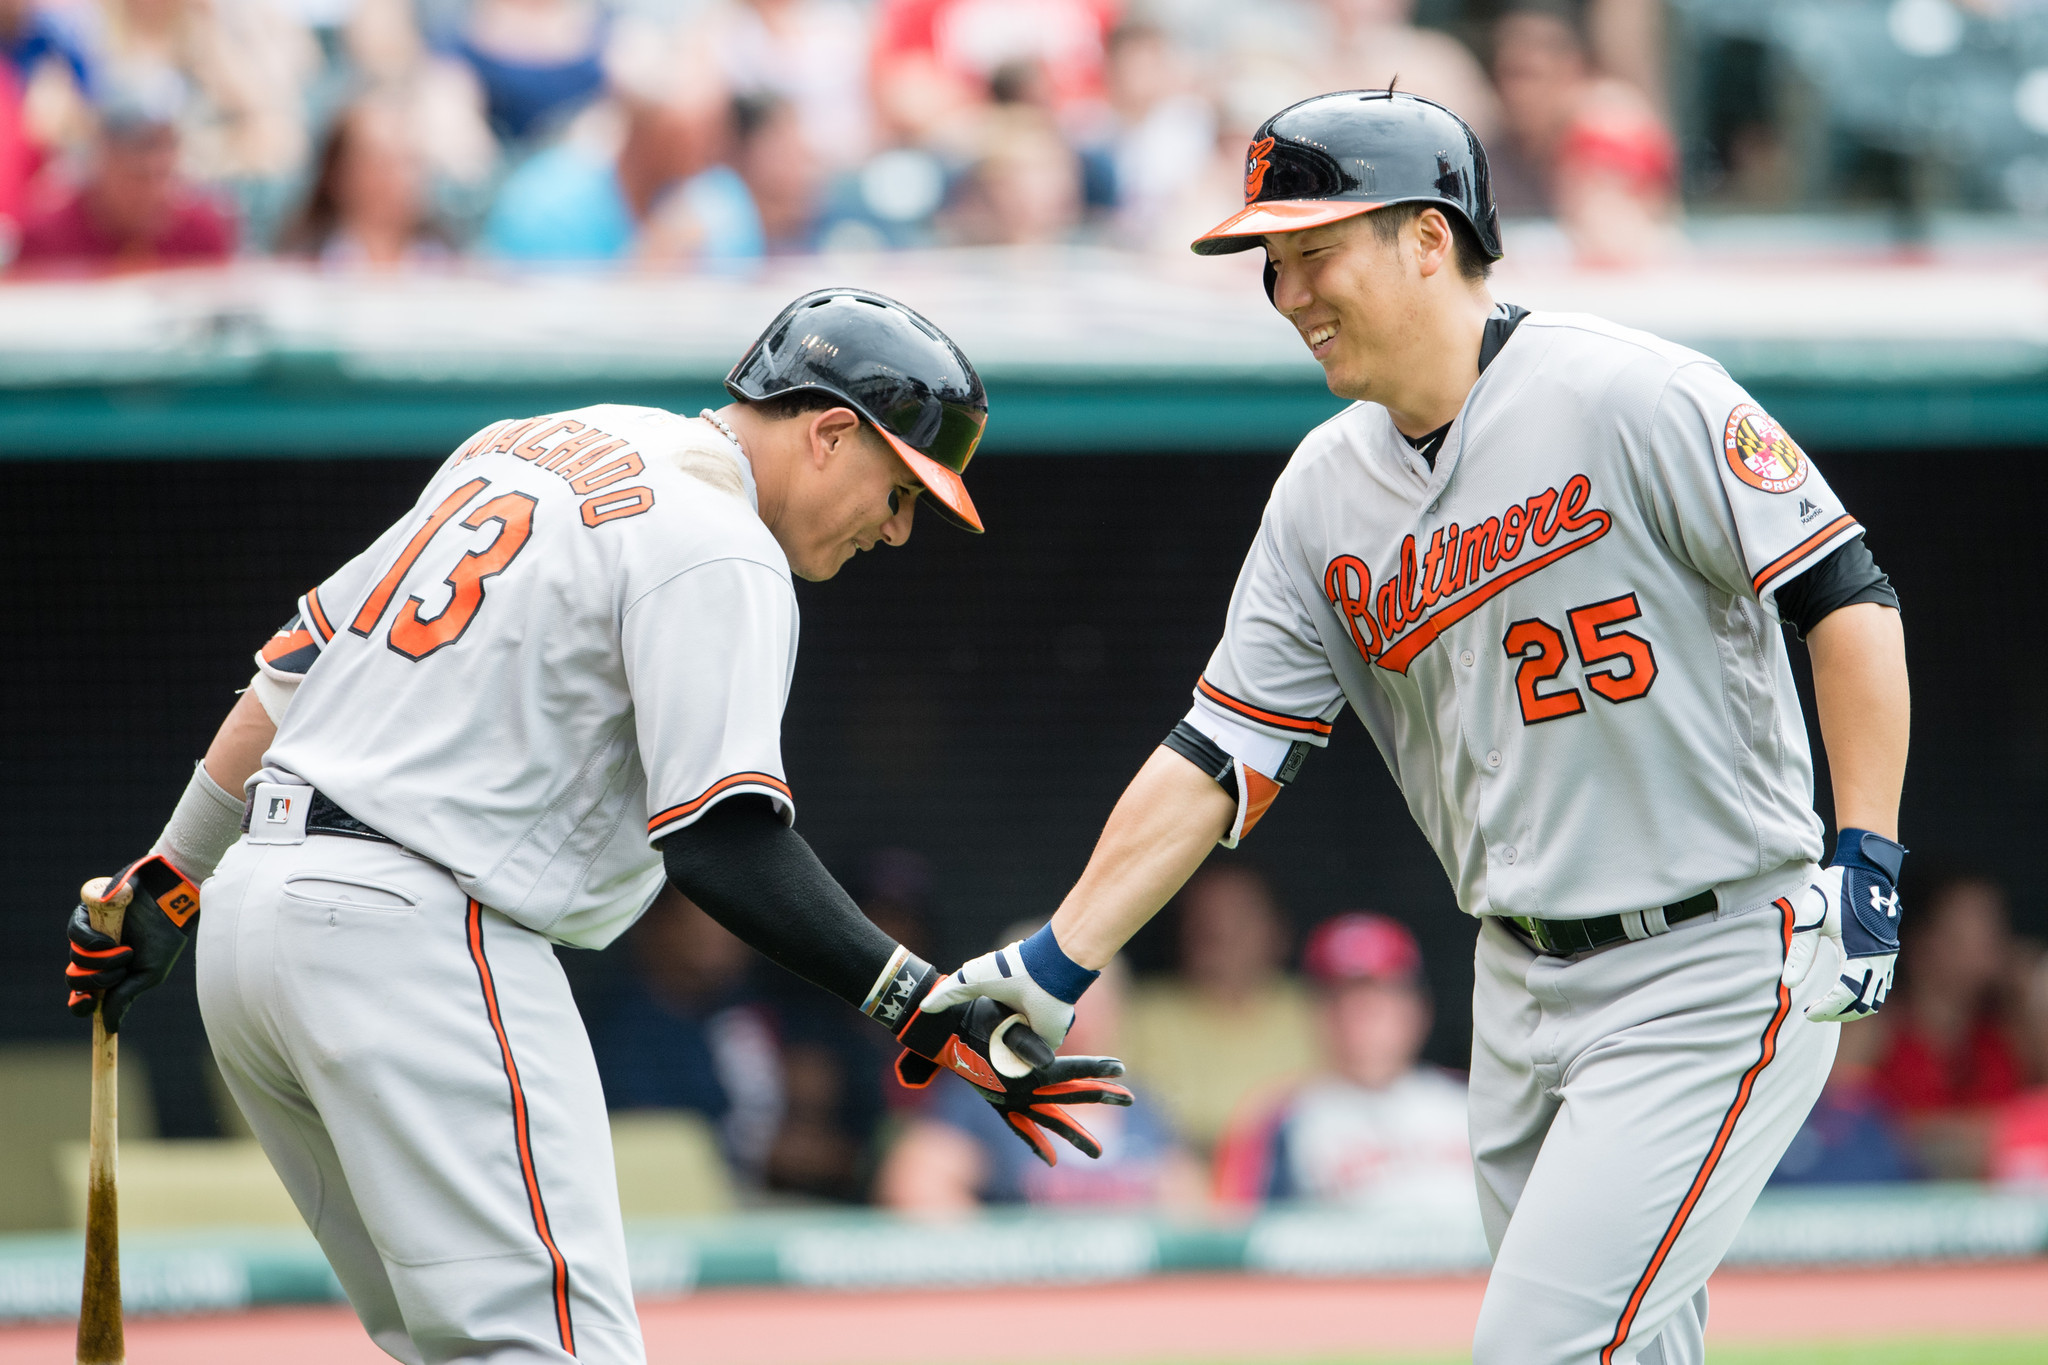 Bal-hyun-soo-kim-s-first-career-home-run-lifts-orioles-in-6-4-win-at-cleveland-20160529